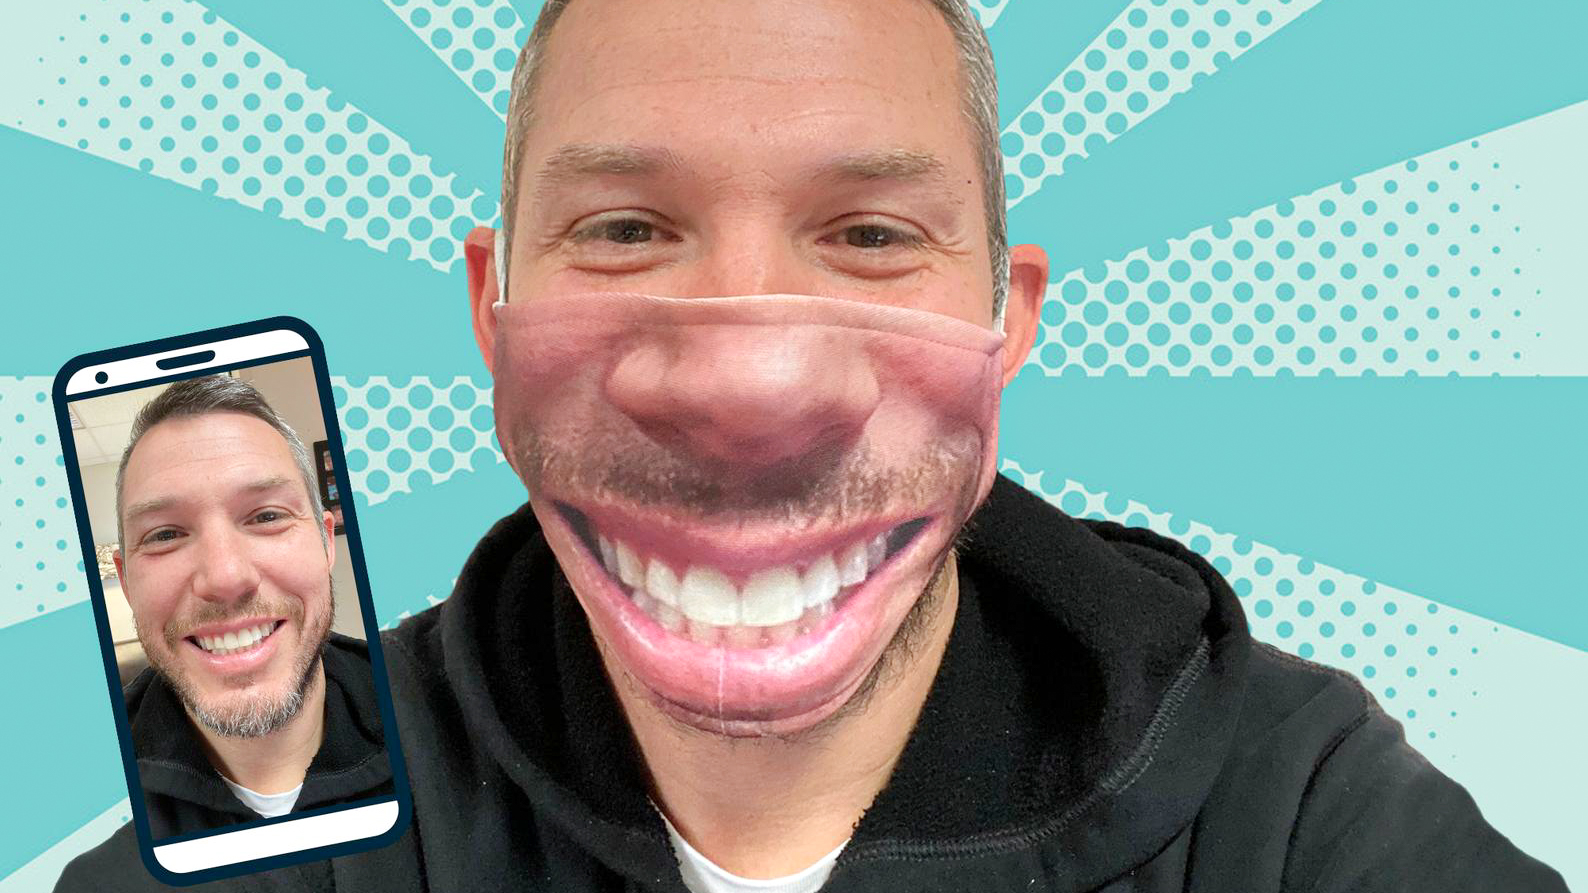 Best Face Masks Ever Put A Selfie On Your Face With These Custom Photo Face Masks Digital Camera World